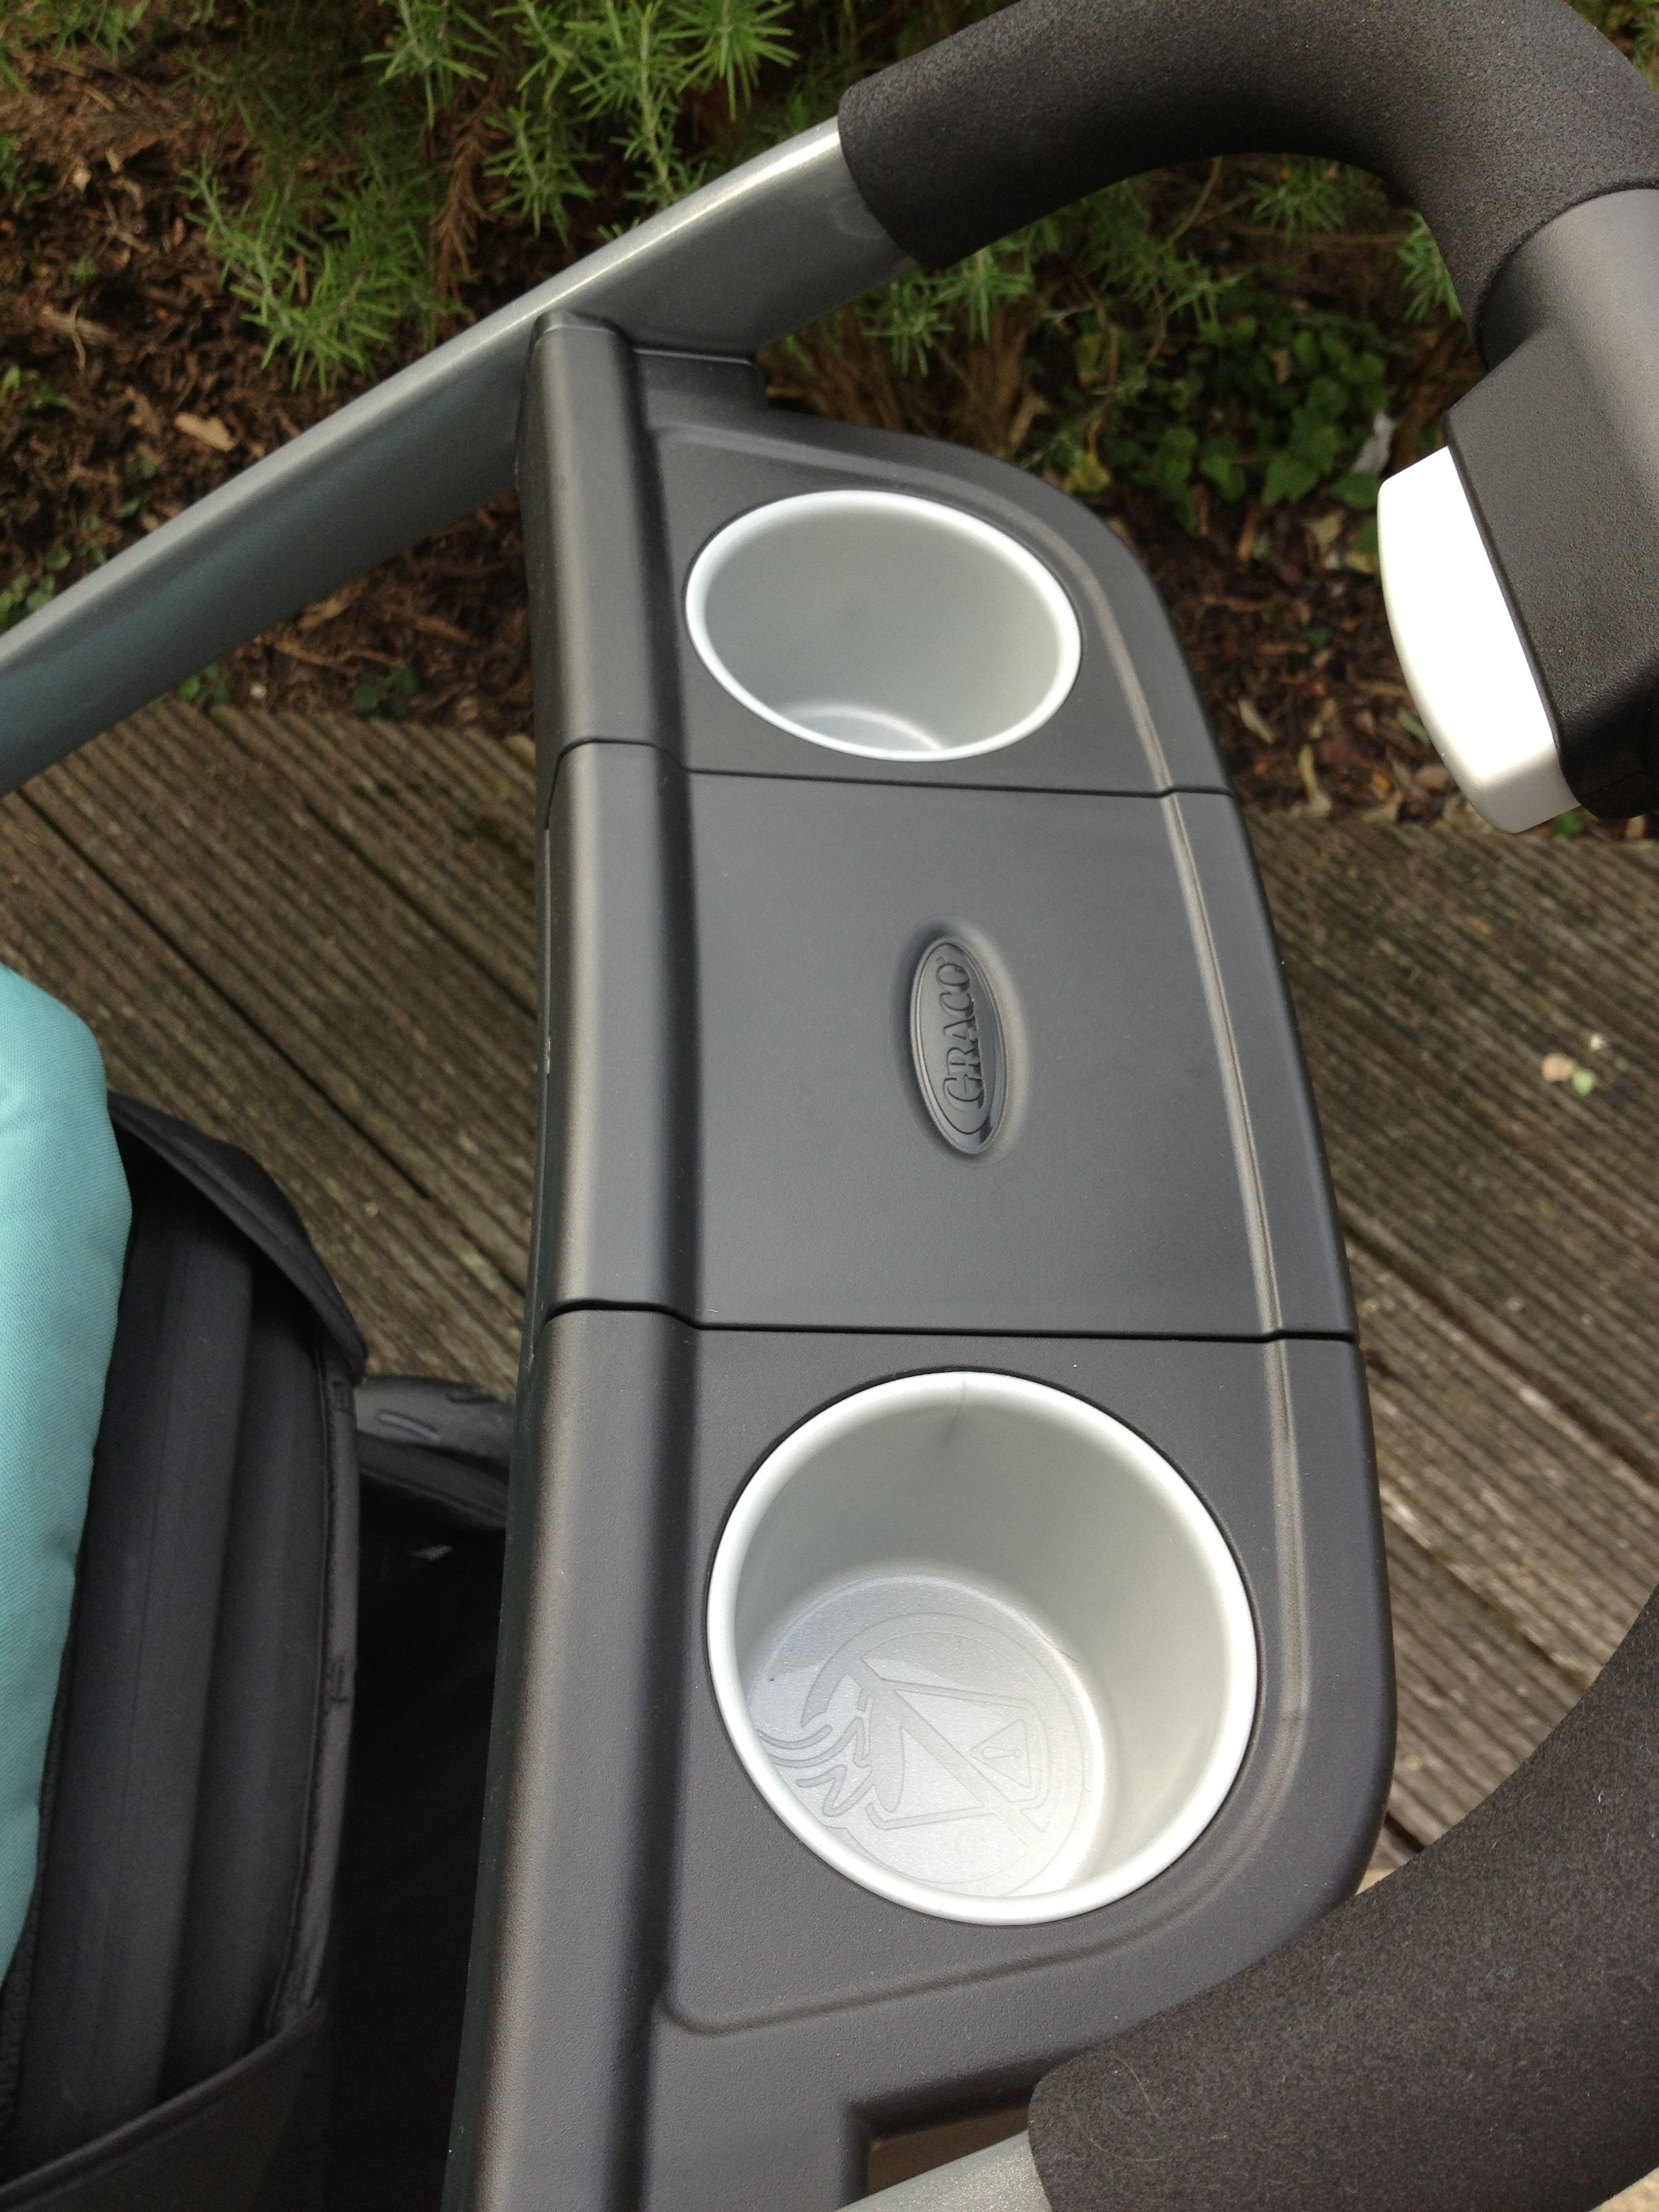 Graco Babyschale Adapter Graco Sky Parent Tray Cup Holders Storage Compartment